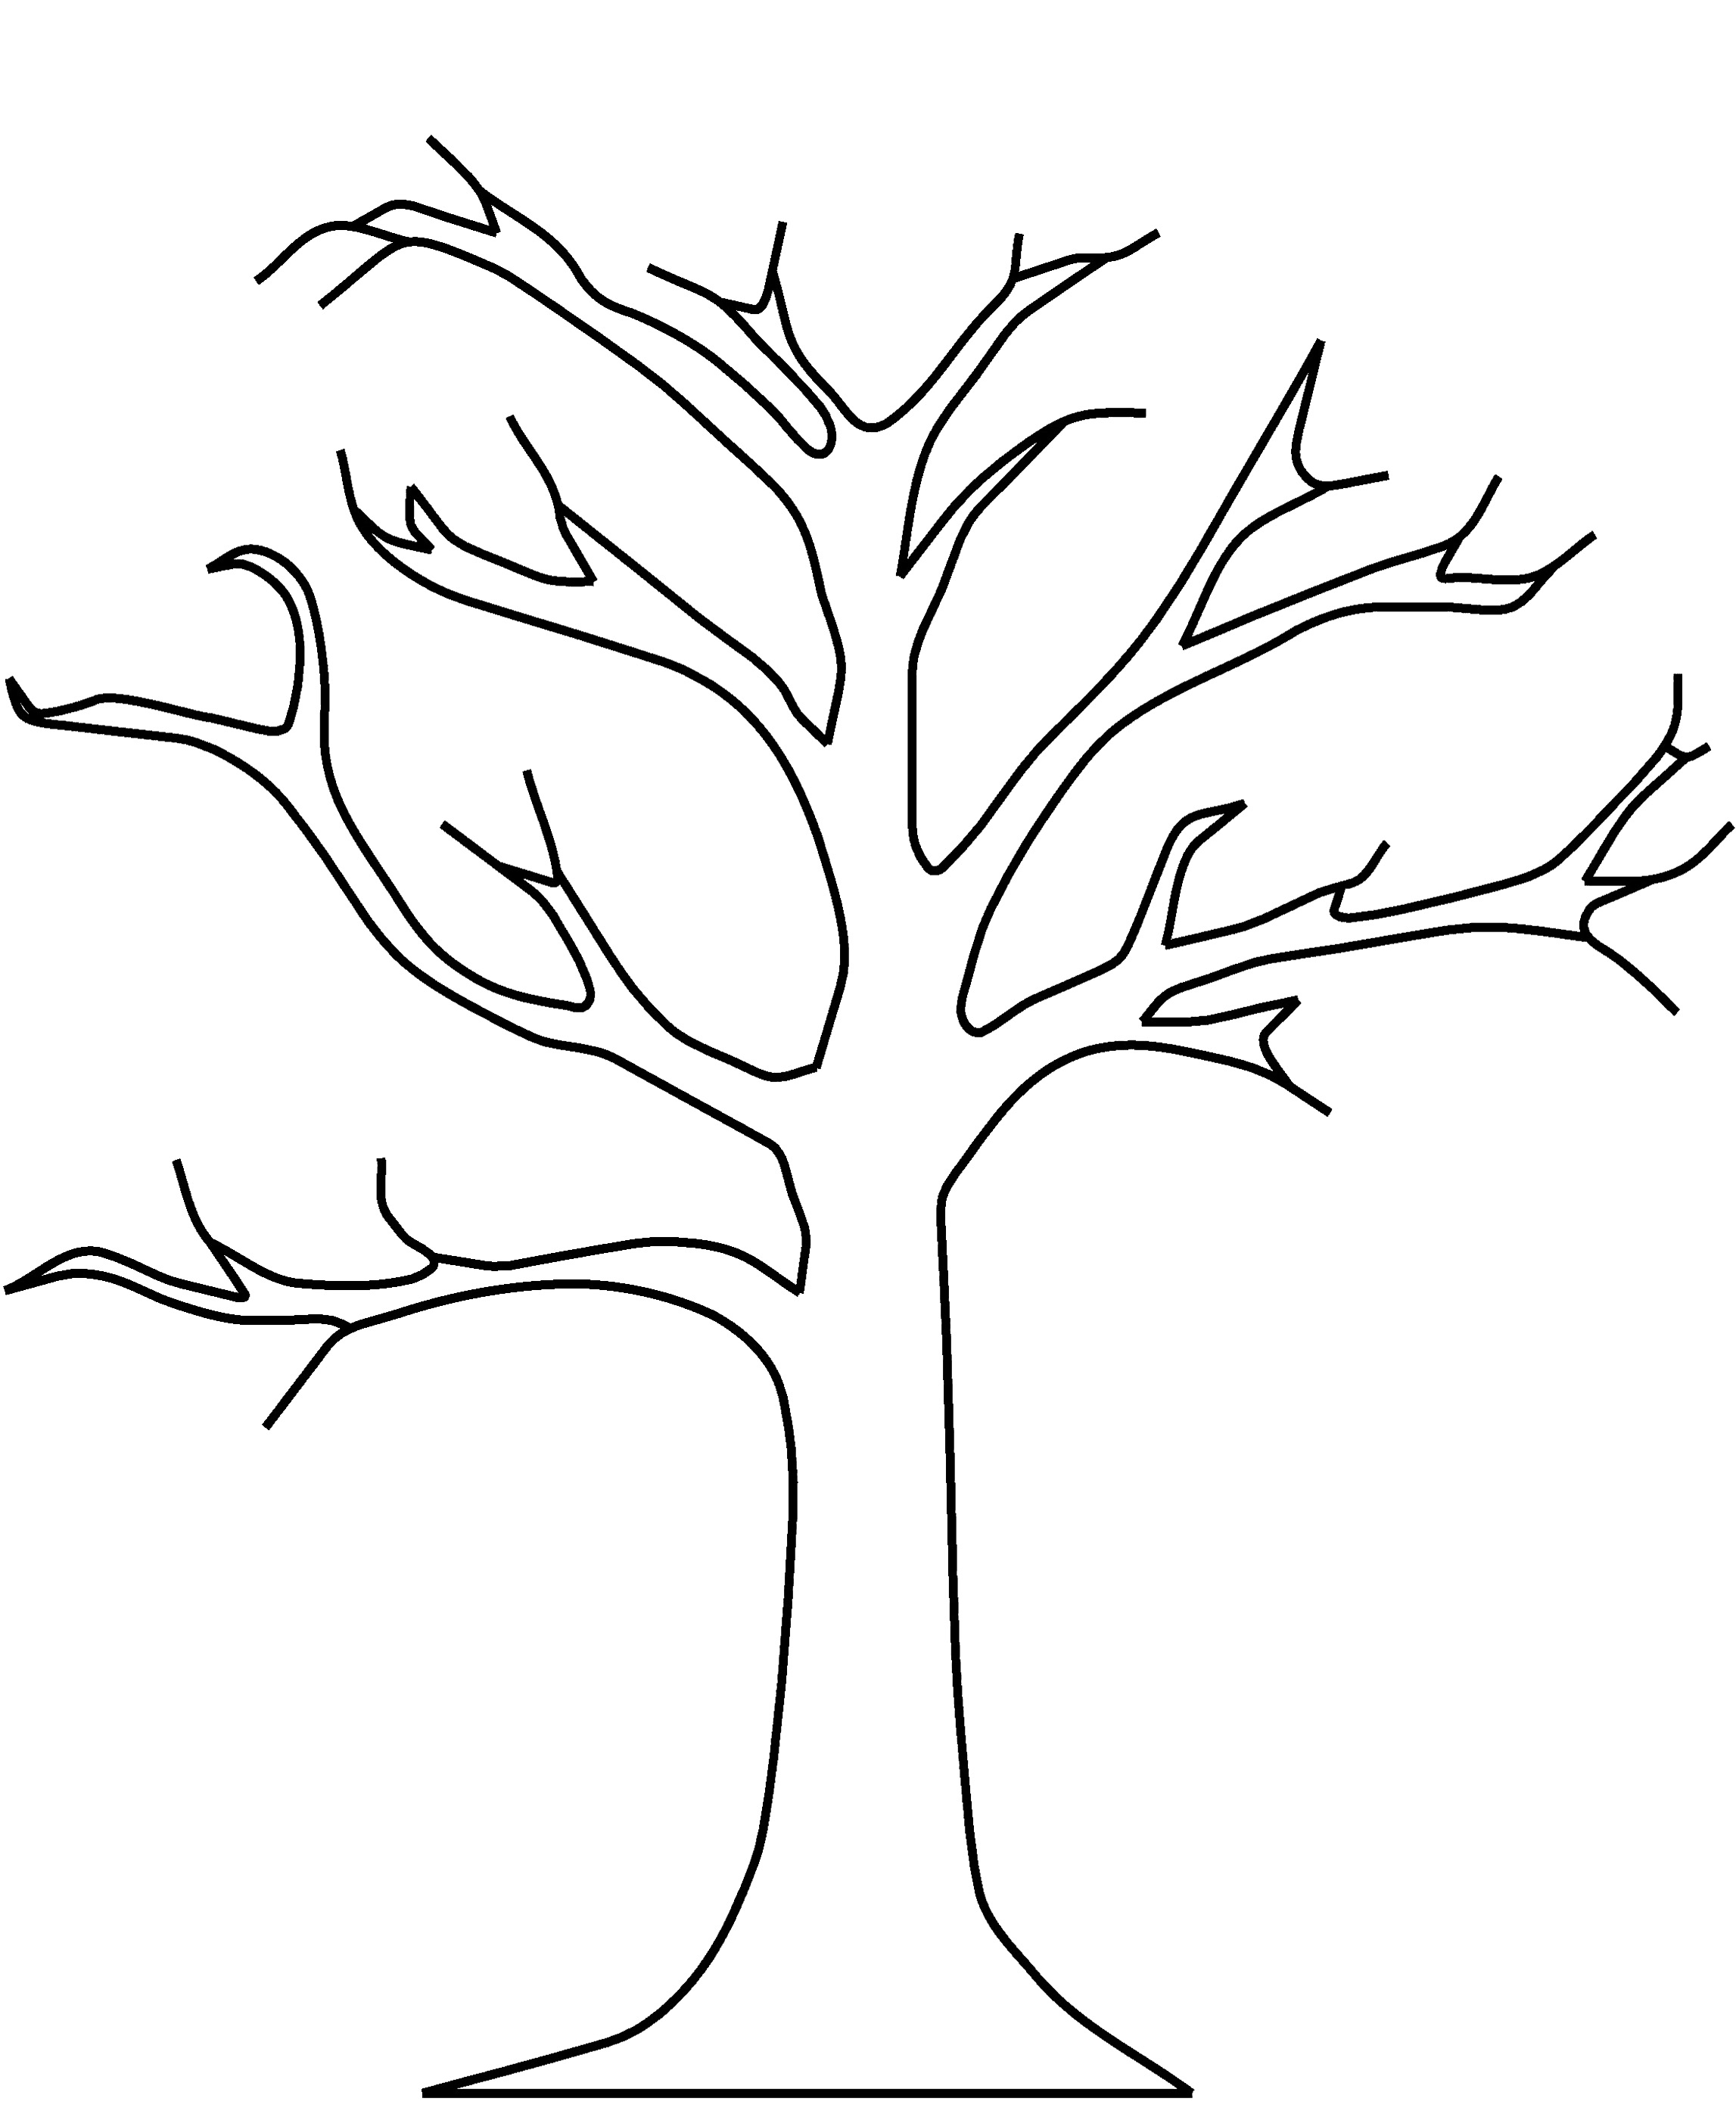 bare tree template silhouette of bare tree outline illustrations royalty tree bare template